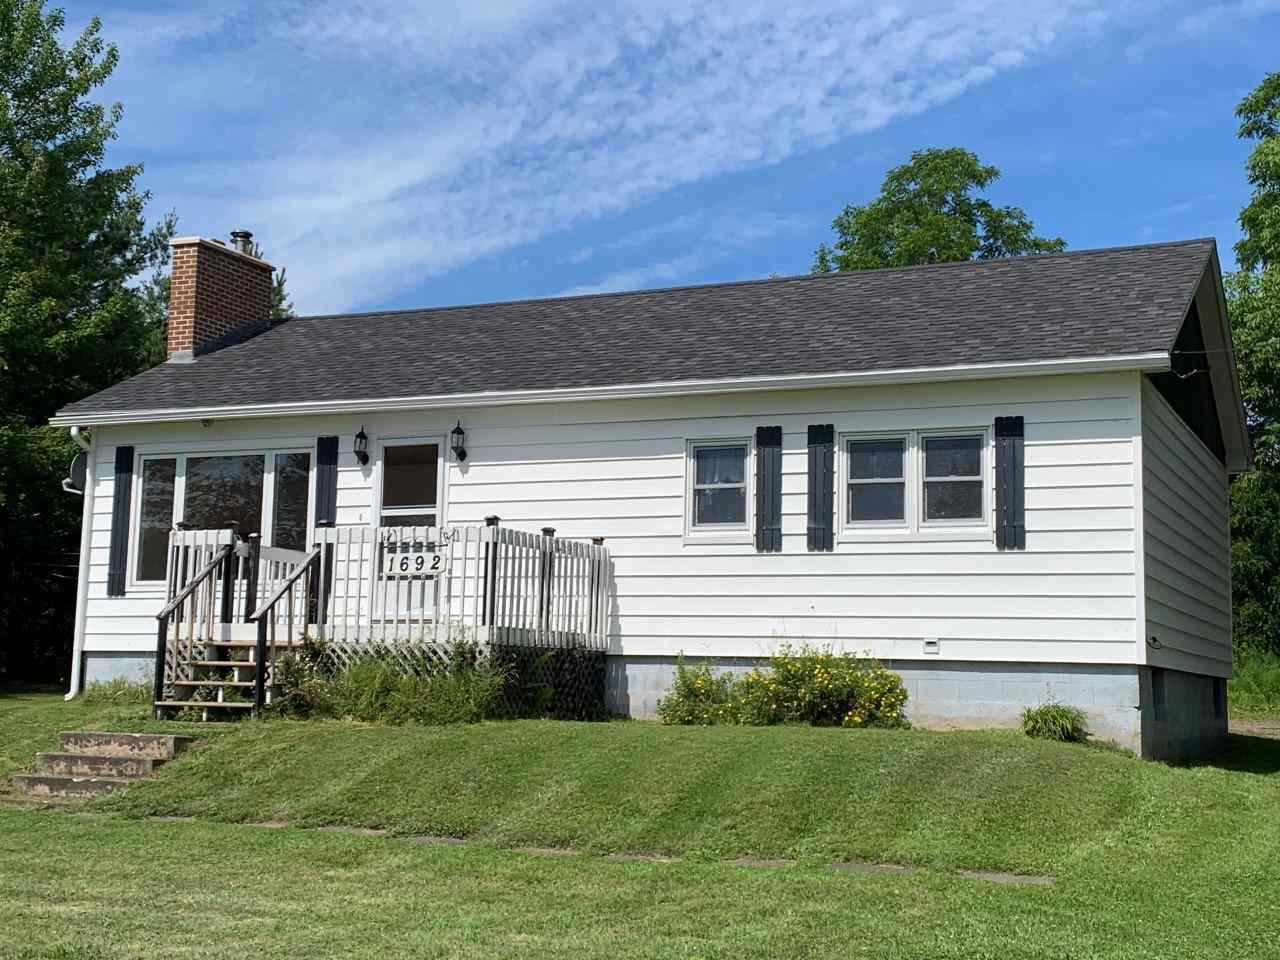 Main Photo: 1692 North Main Street in Westville: 107-Trenton,Westville,Pictou Residential for sale (Northern Region)  : MLS®# 202013849